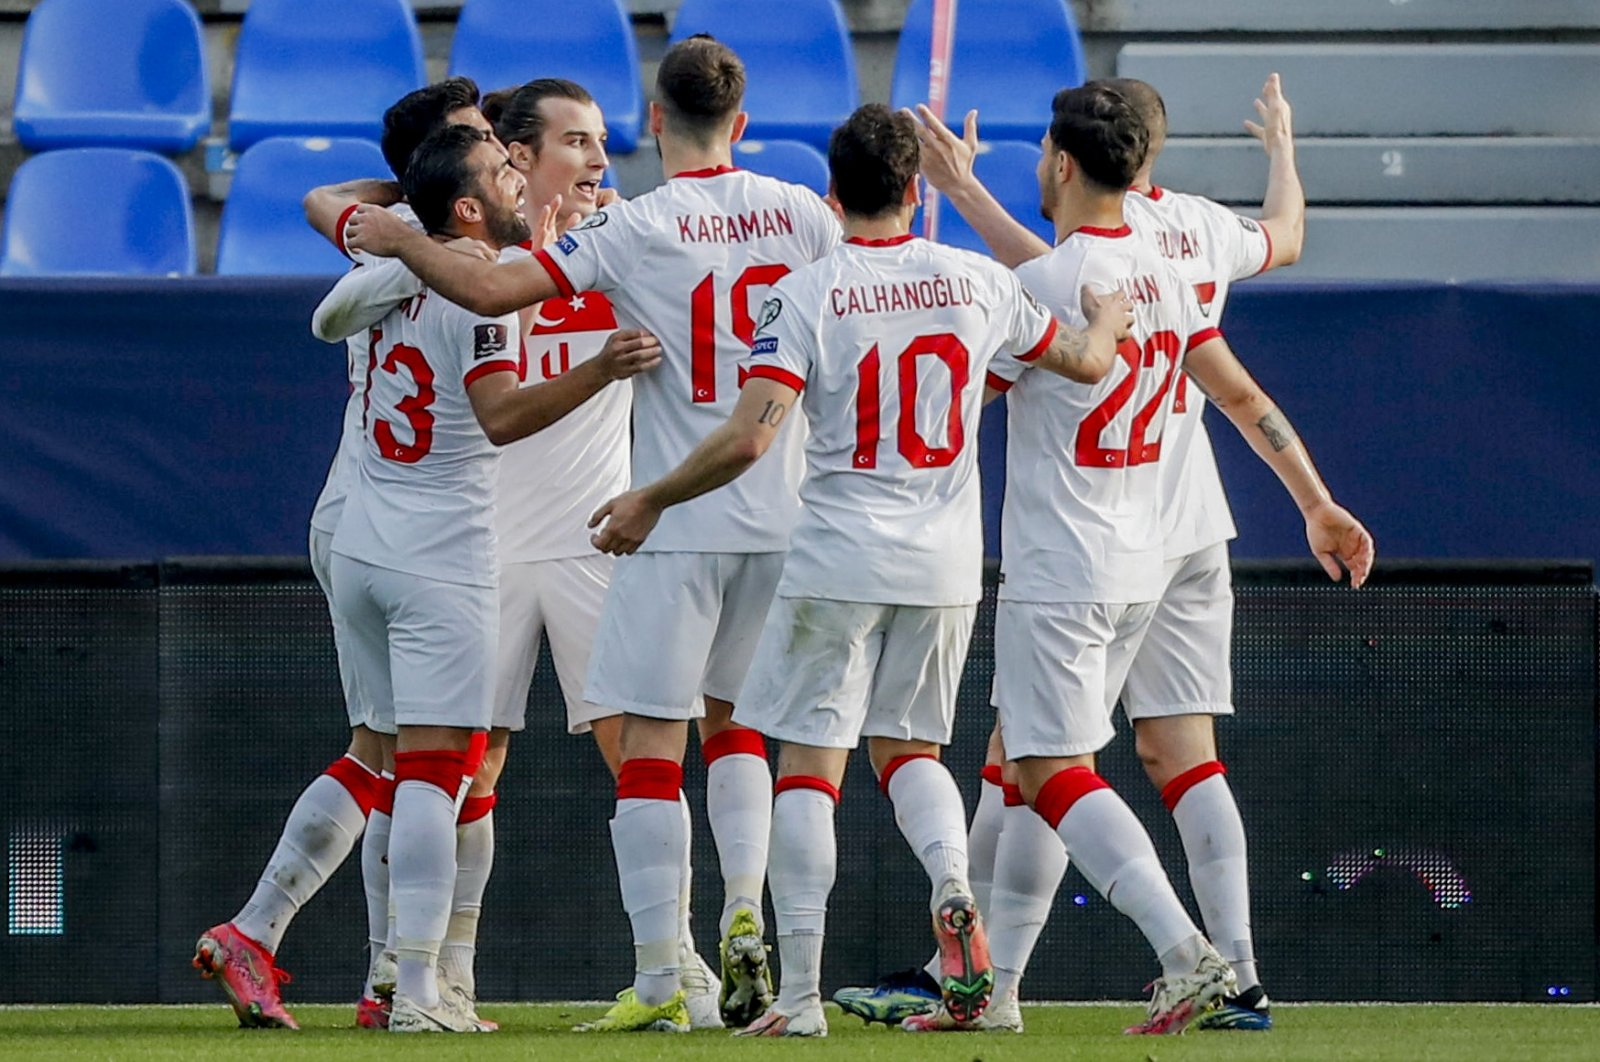 Turkish national team players a goal against Norway in a World Cup 2022 Group G qualifying match at La Rosaleda stadium, Malaga, Spain, March 27, 2021. (AP Photo)